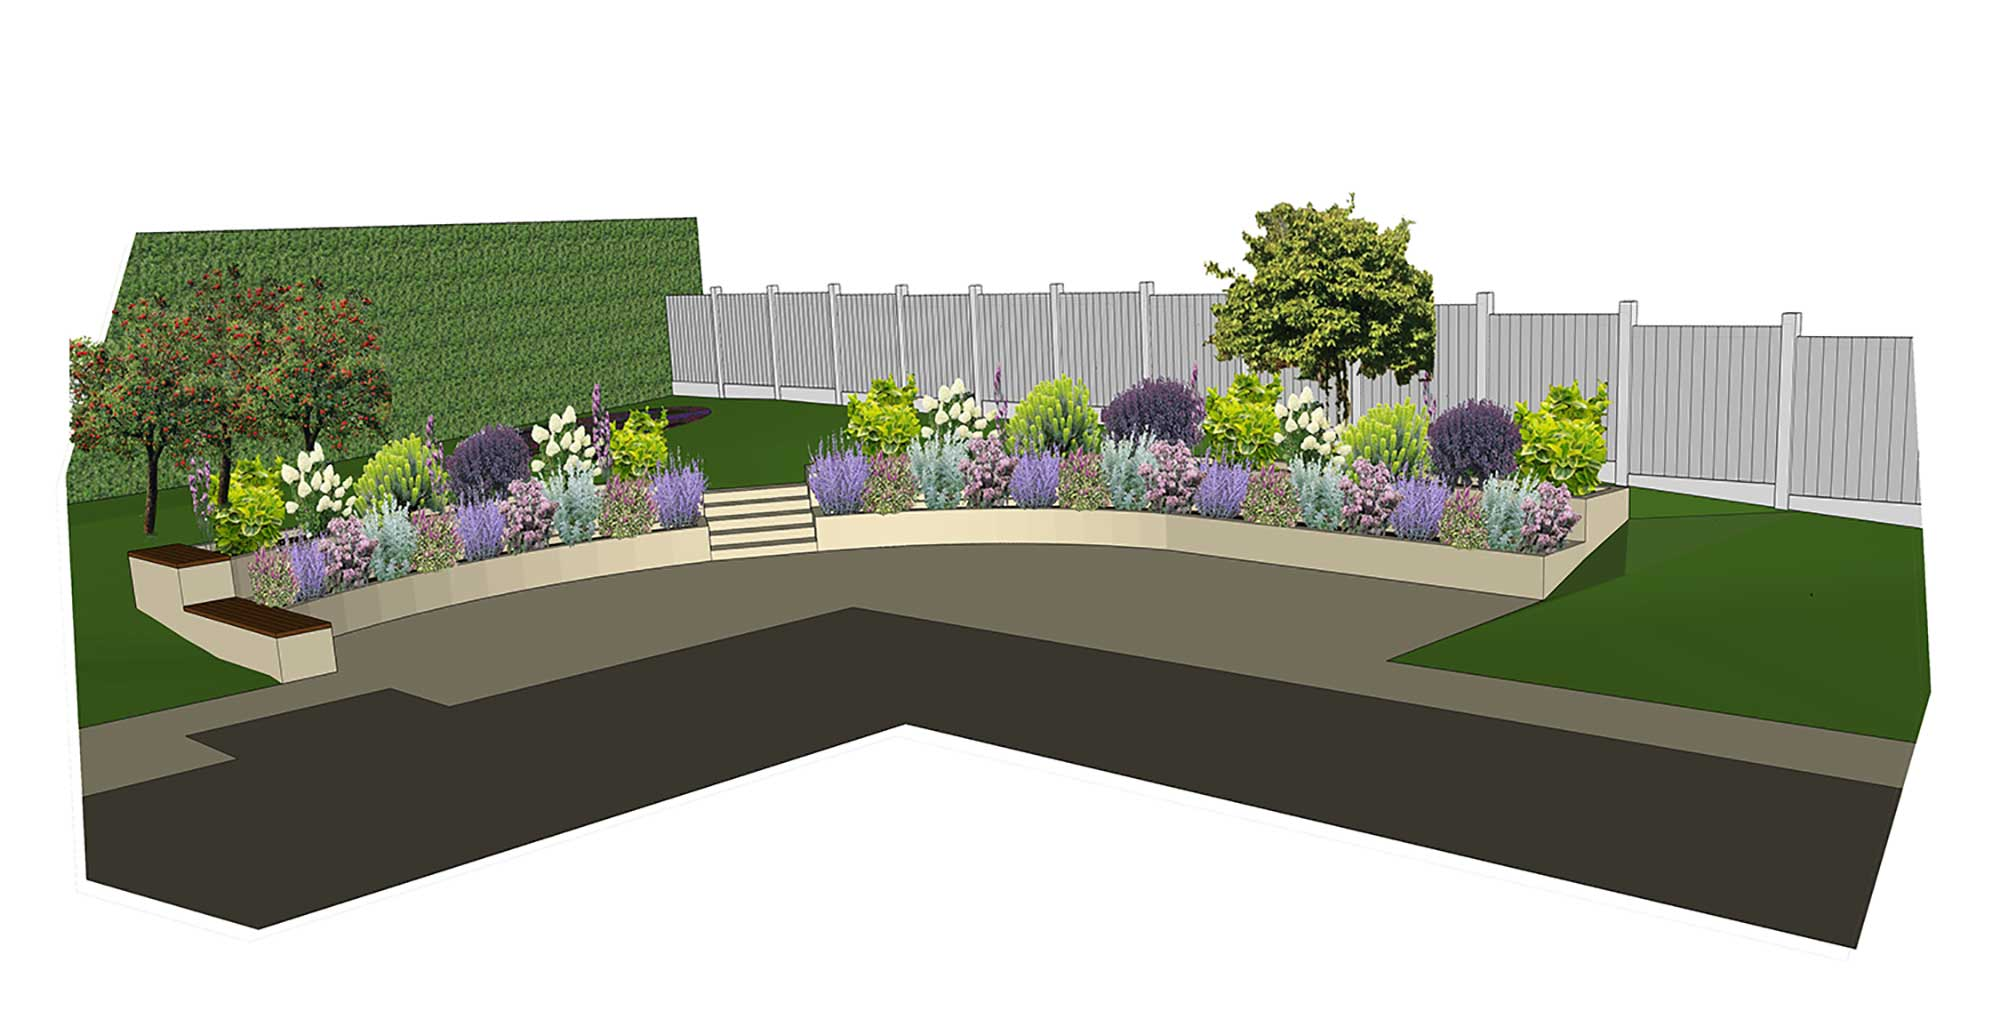 Garden designs and layouts uk large image of suzie nichols for Small garden layouts designs